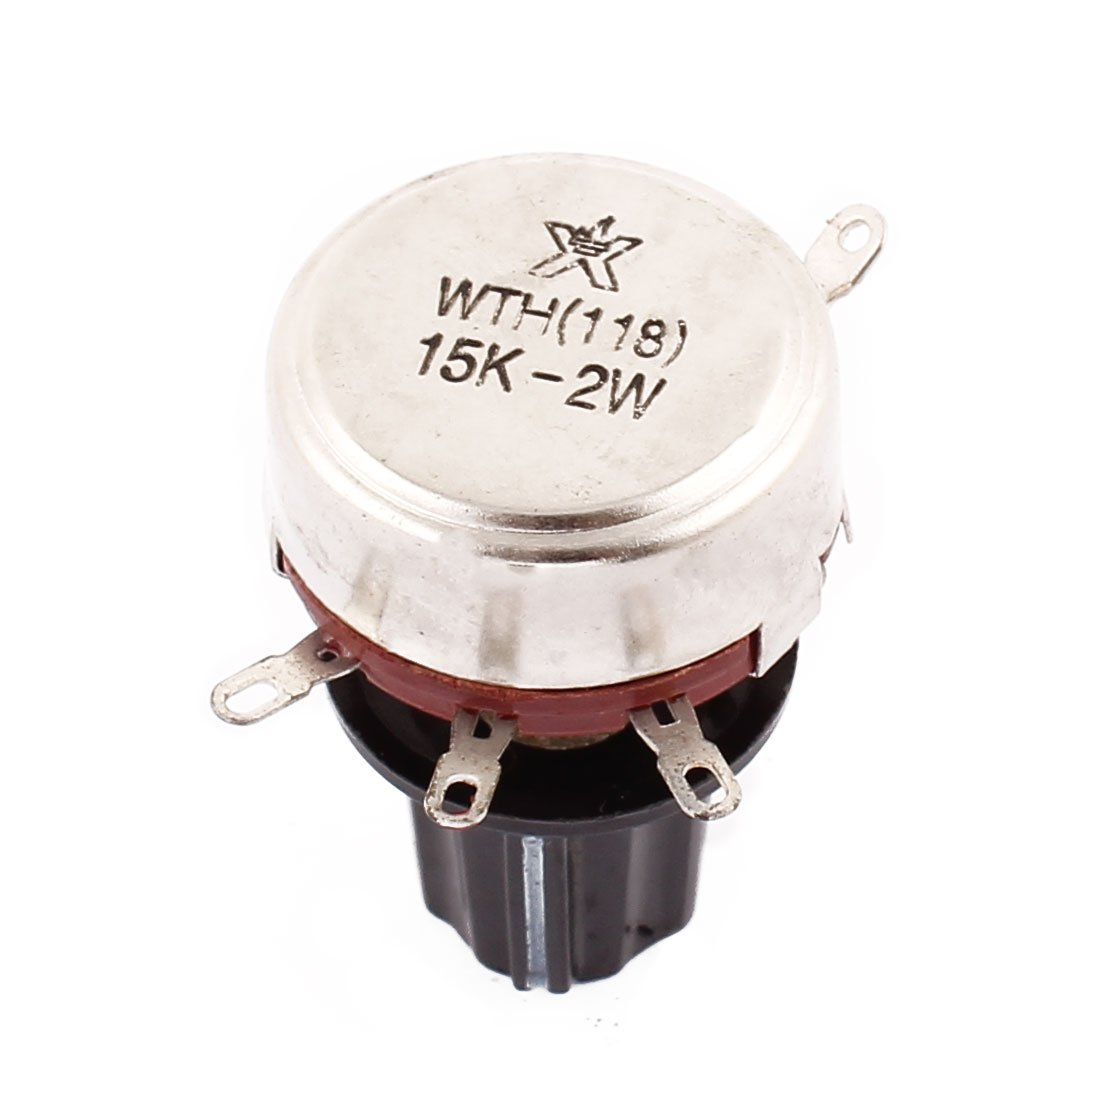 Uxcell a16060300ux0057  WTH118 Rotary Wire Wound Potentiometer 15 K Ohm Adjustable Resistance with Cap